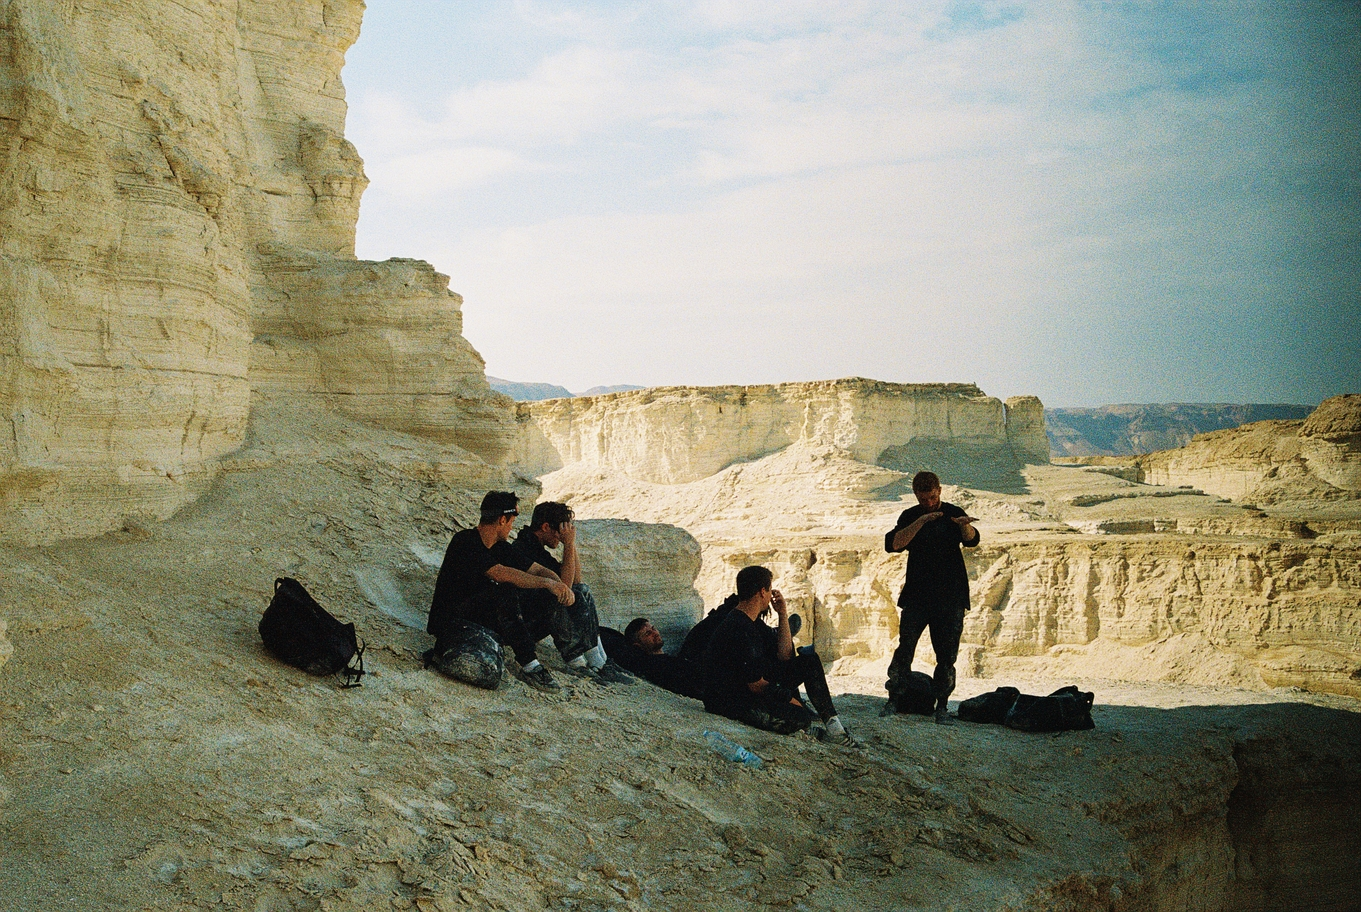 Parkour in the Negev desert